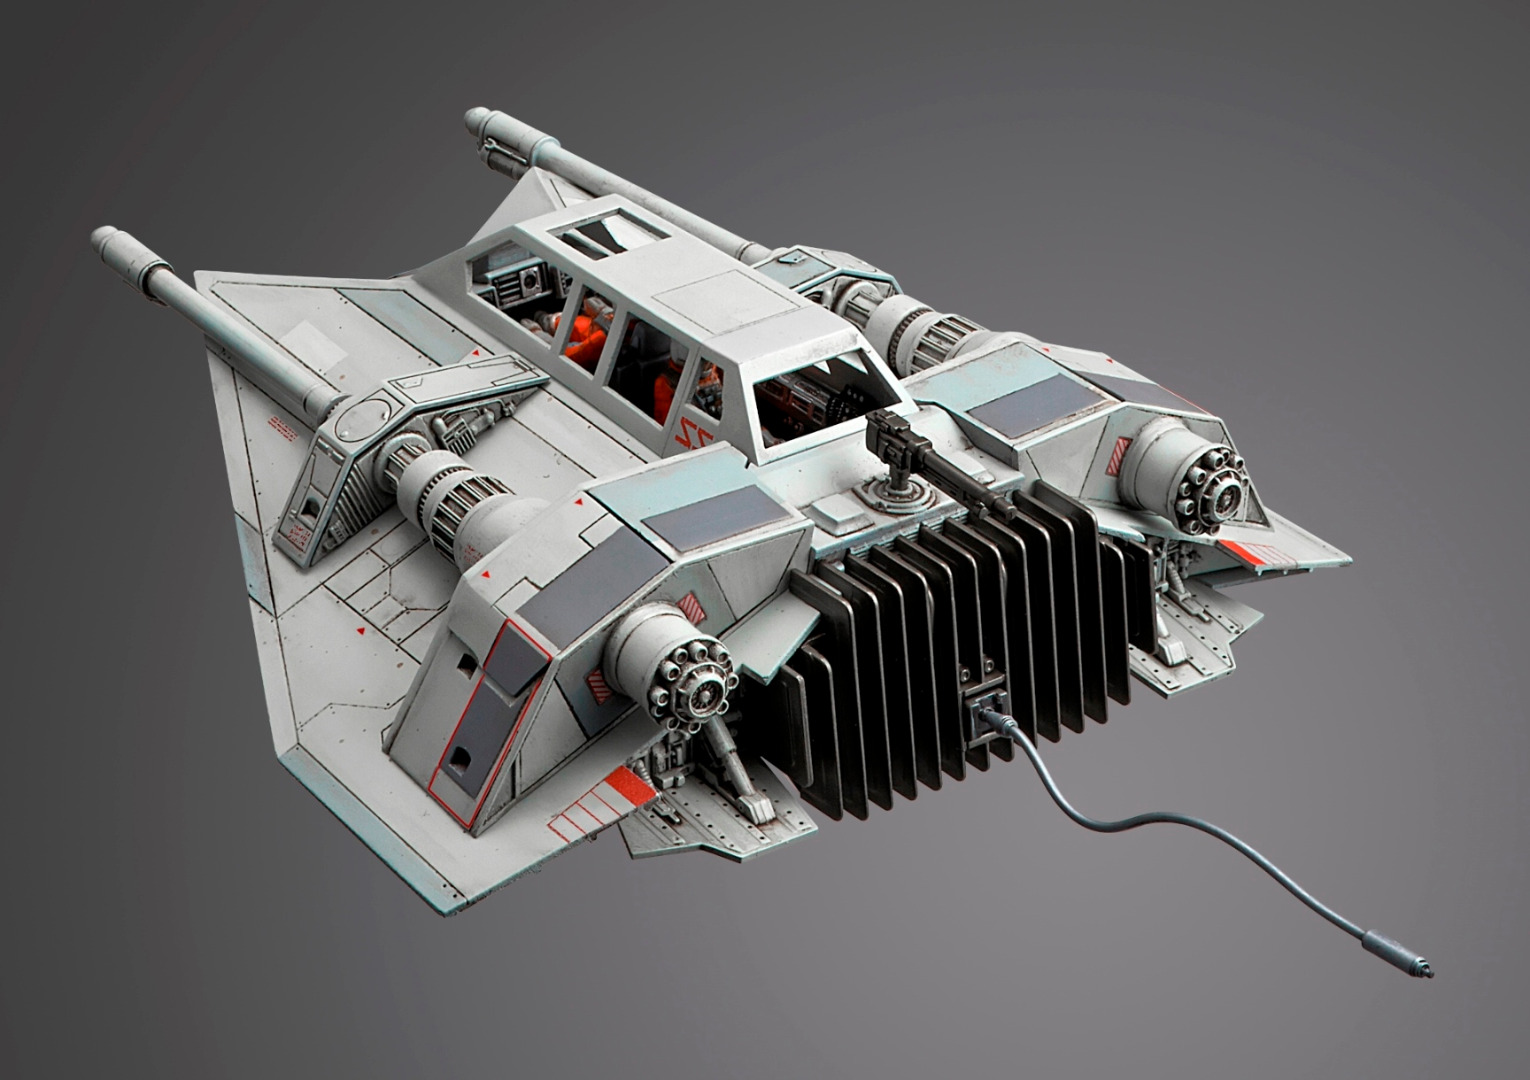 Star Wars: Snowspeeder - 1:48 Scale Model Kit